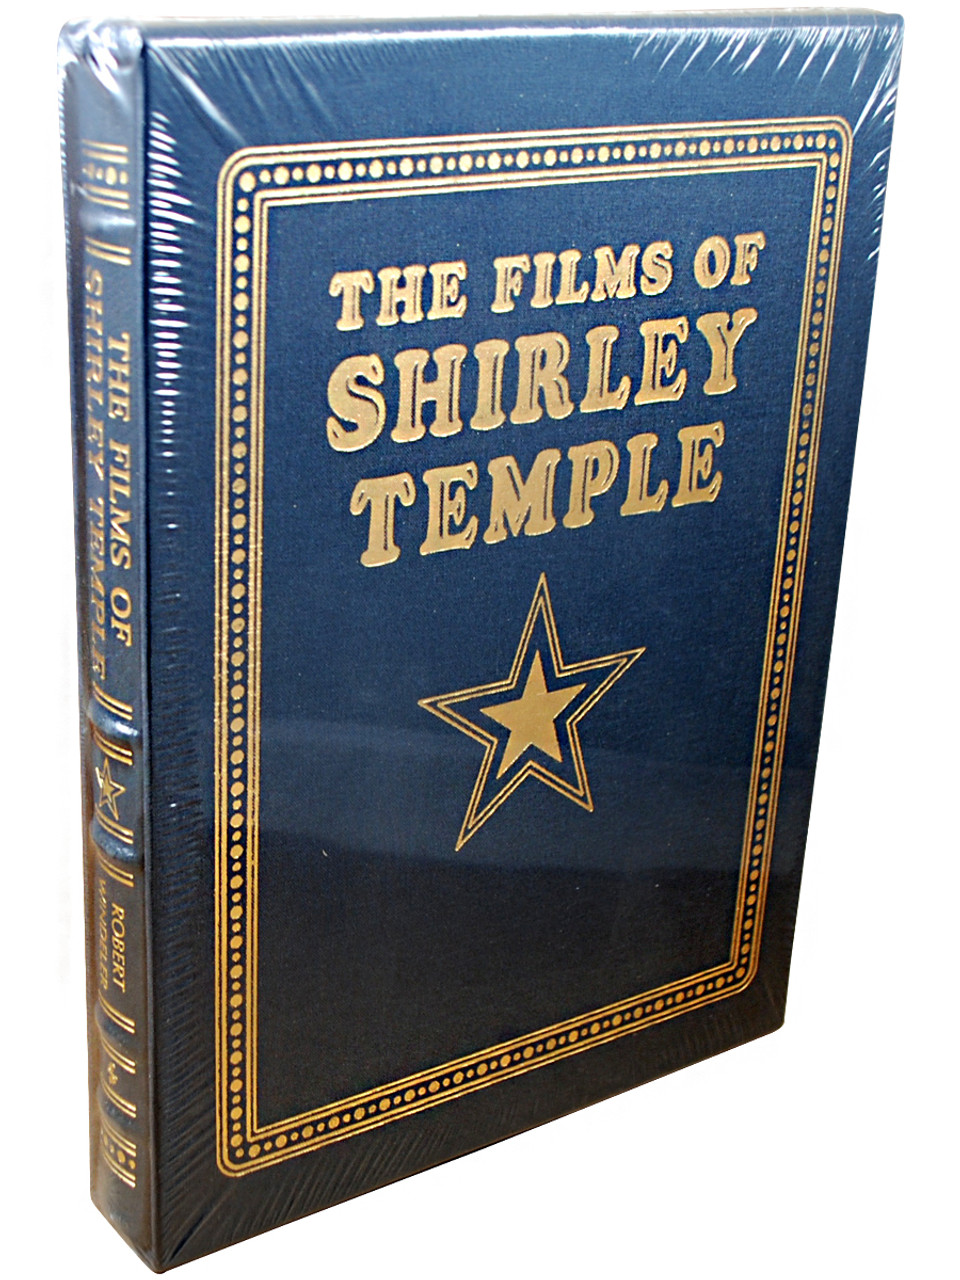 """Robert Windeler """"The Films of Shirley Temple"""" Deluxe Leather Bound Collector's Edition, Limited Edition of 1,928 Numbered Slipcased [Sealed]"""